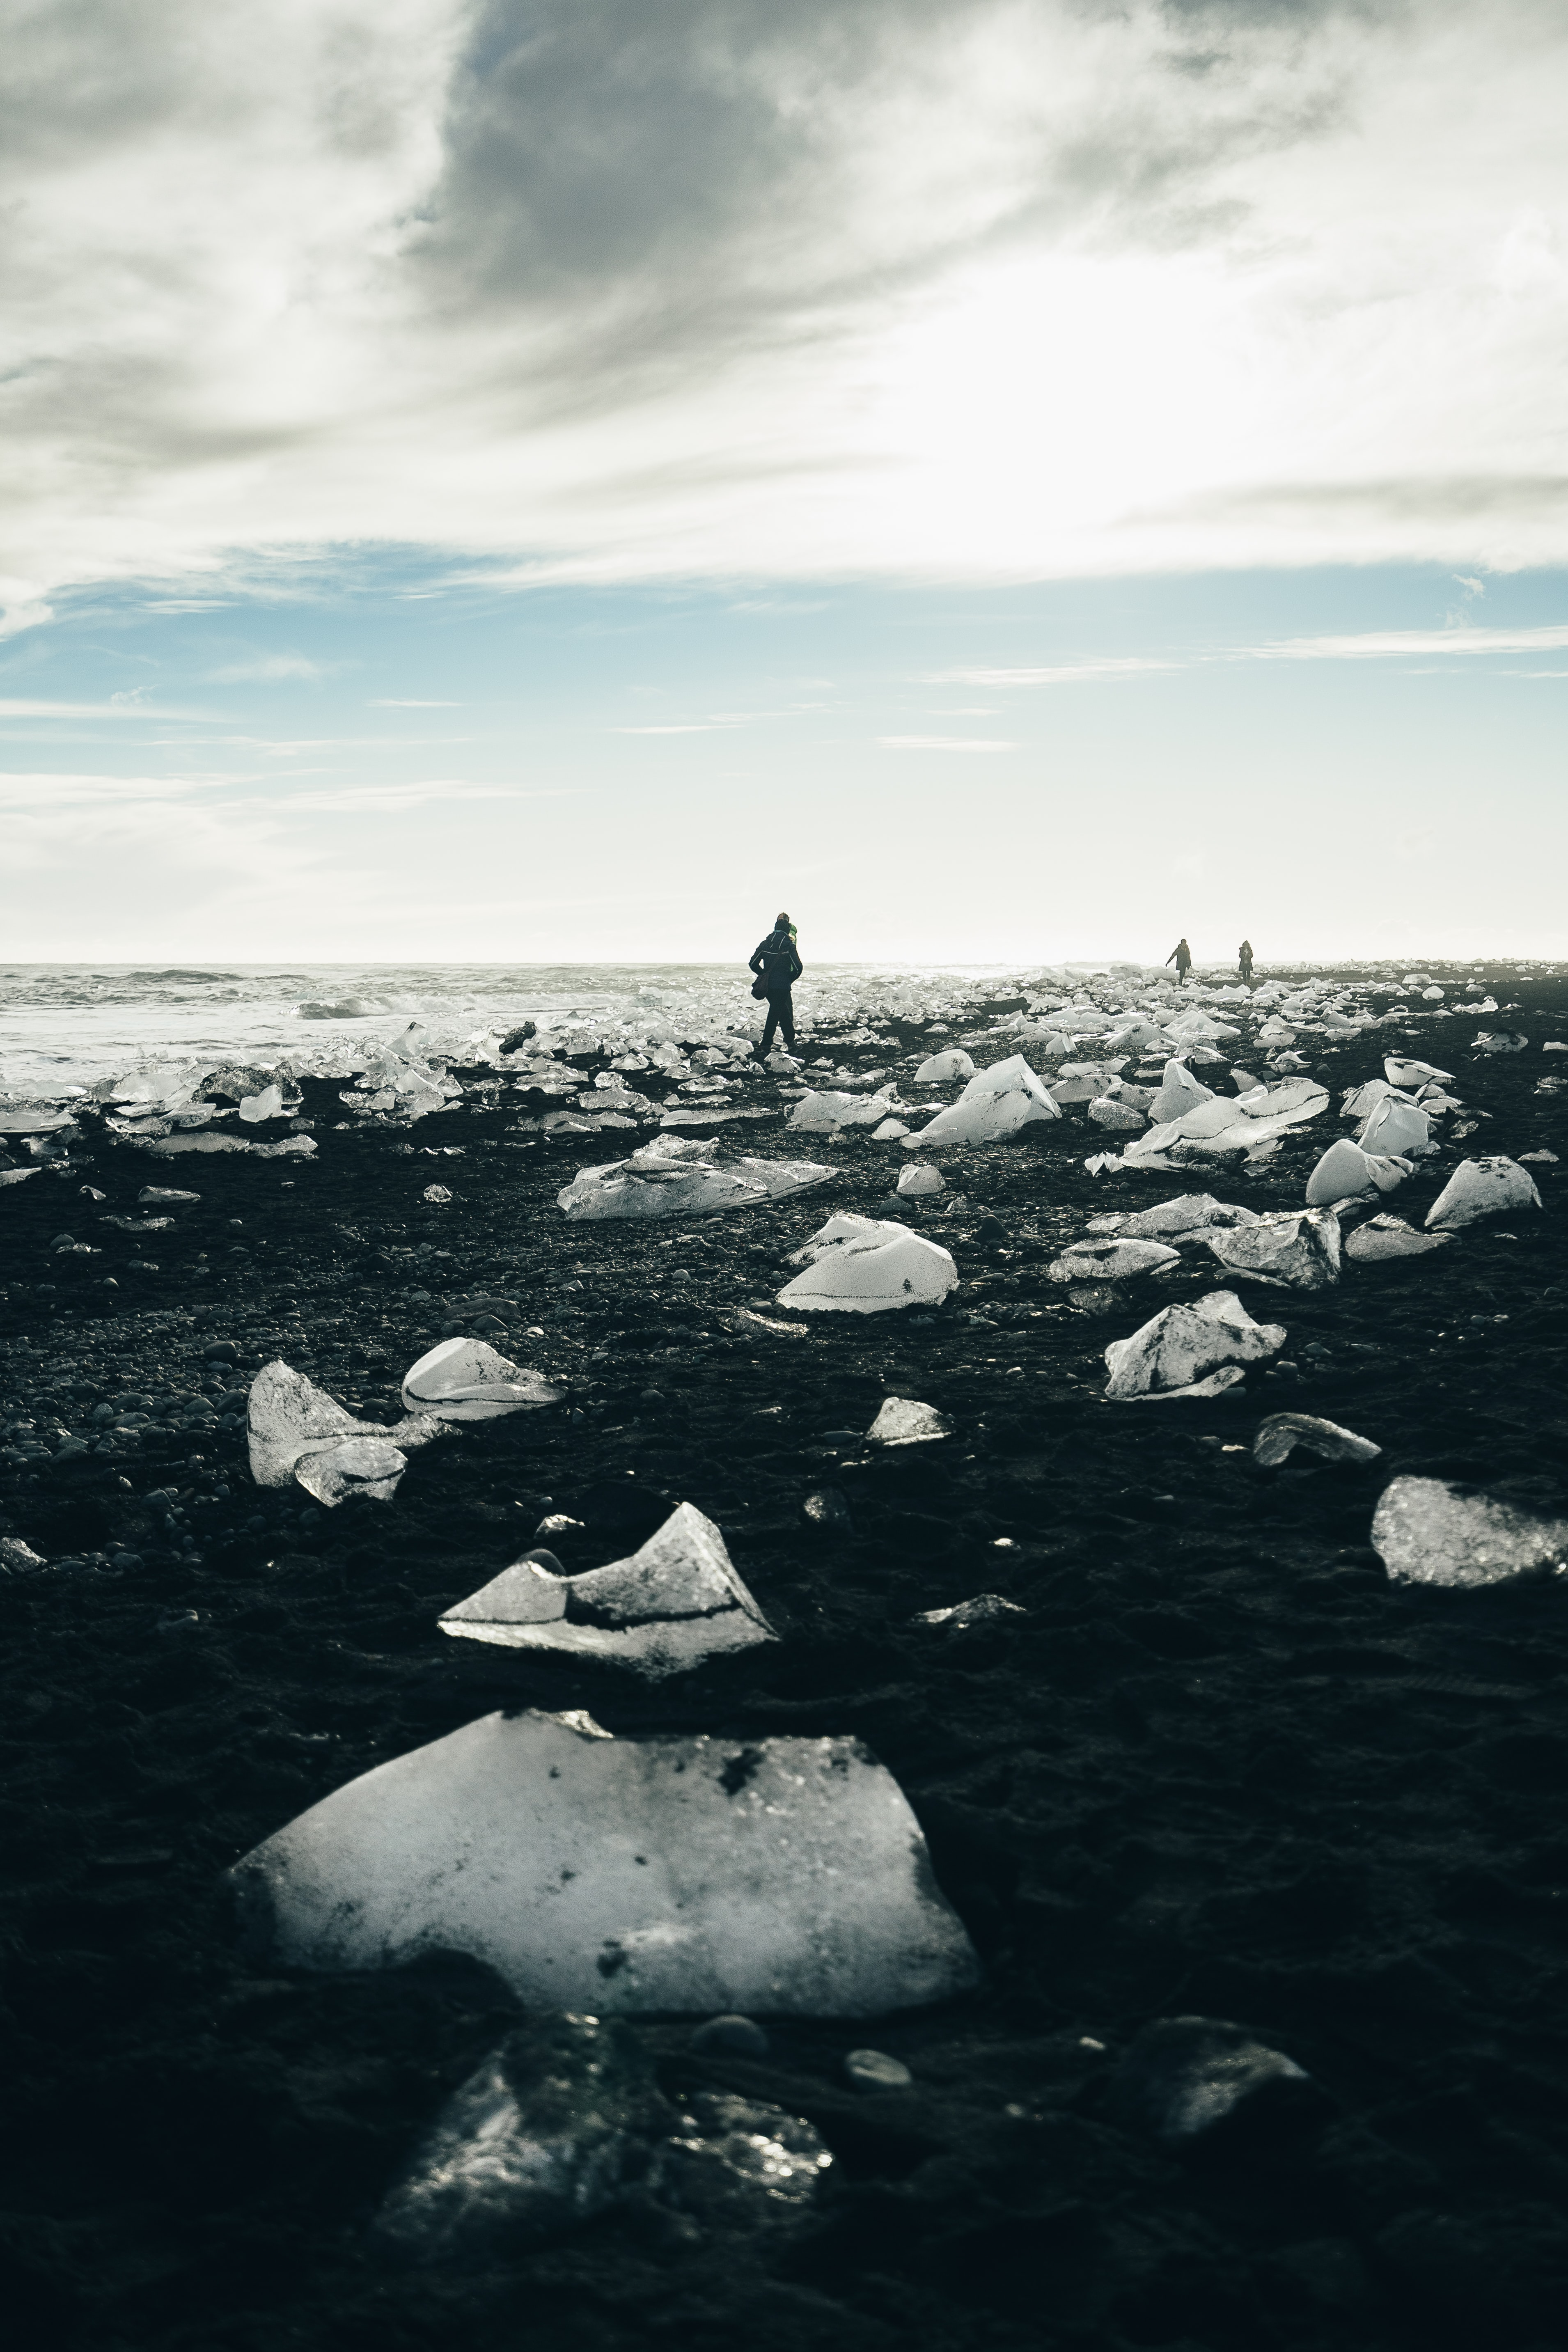 Three people walk down a rocky beach covered in melting ice